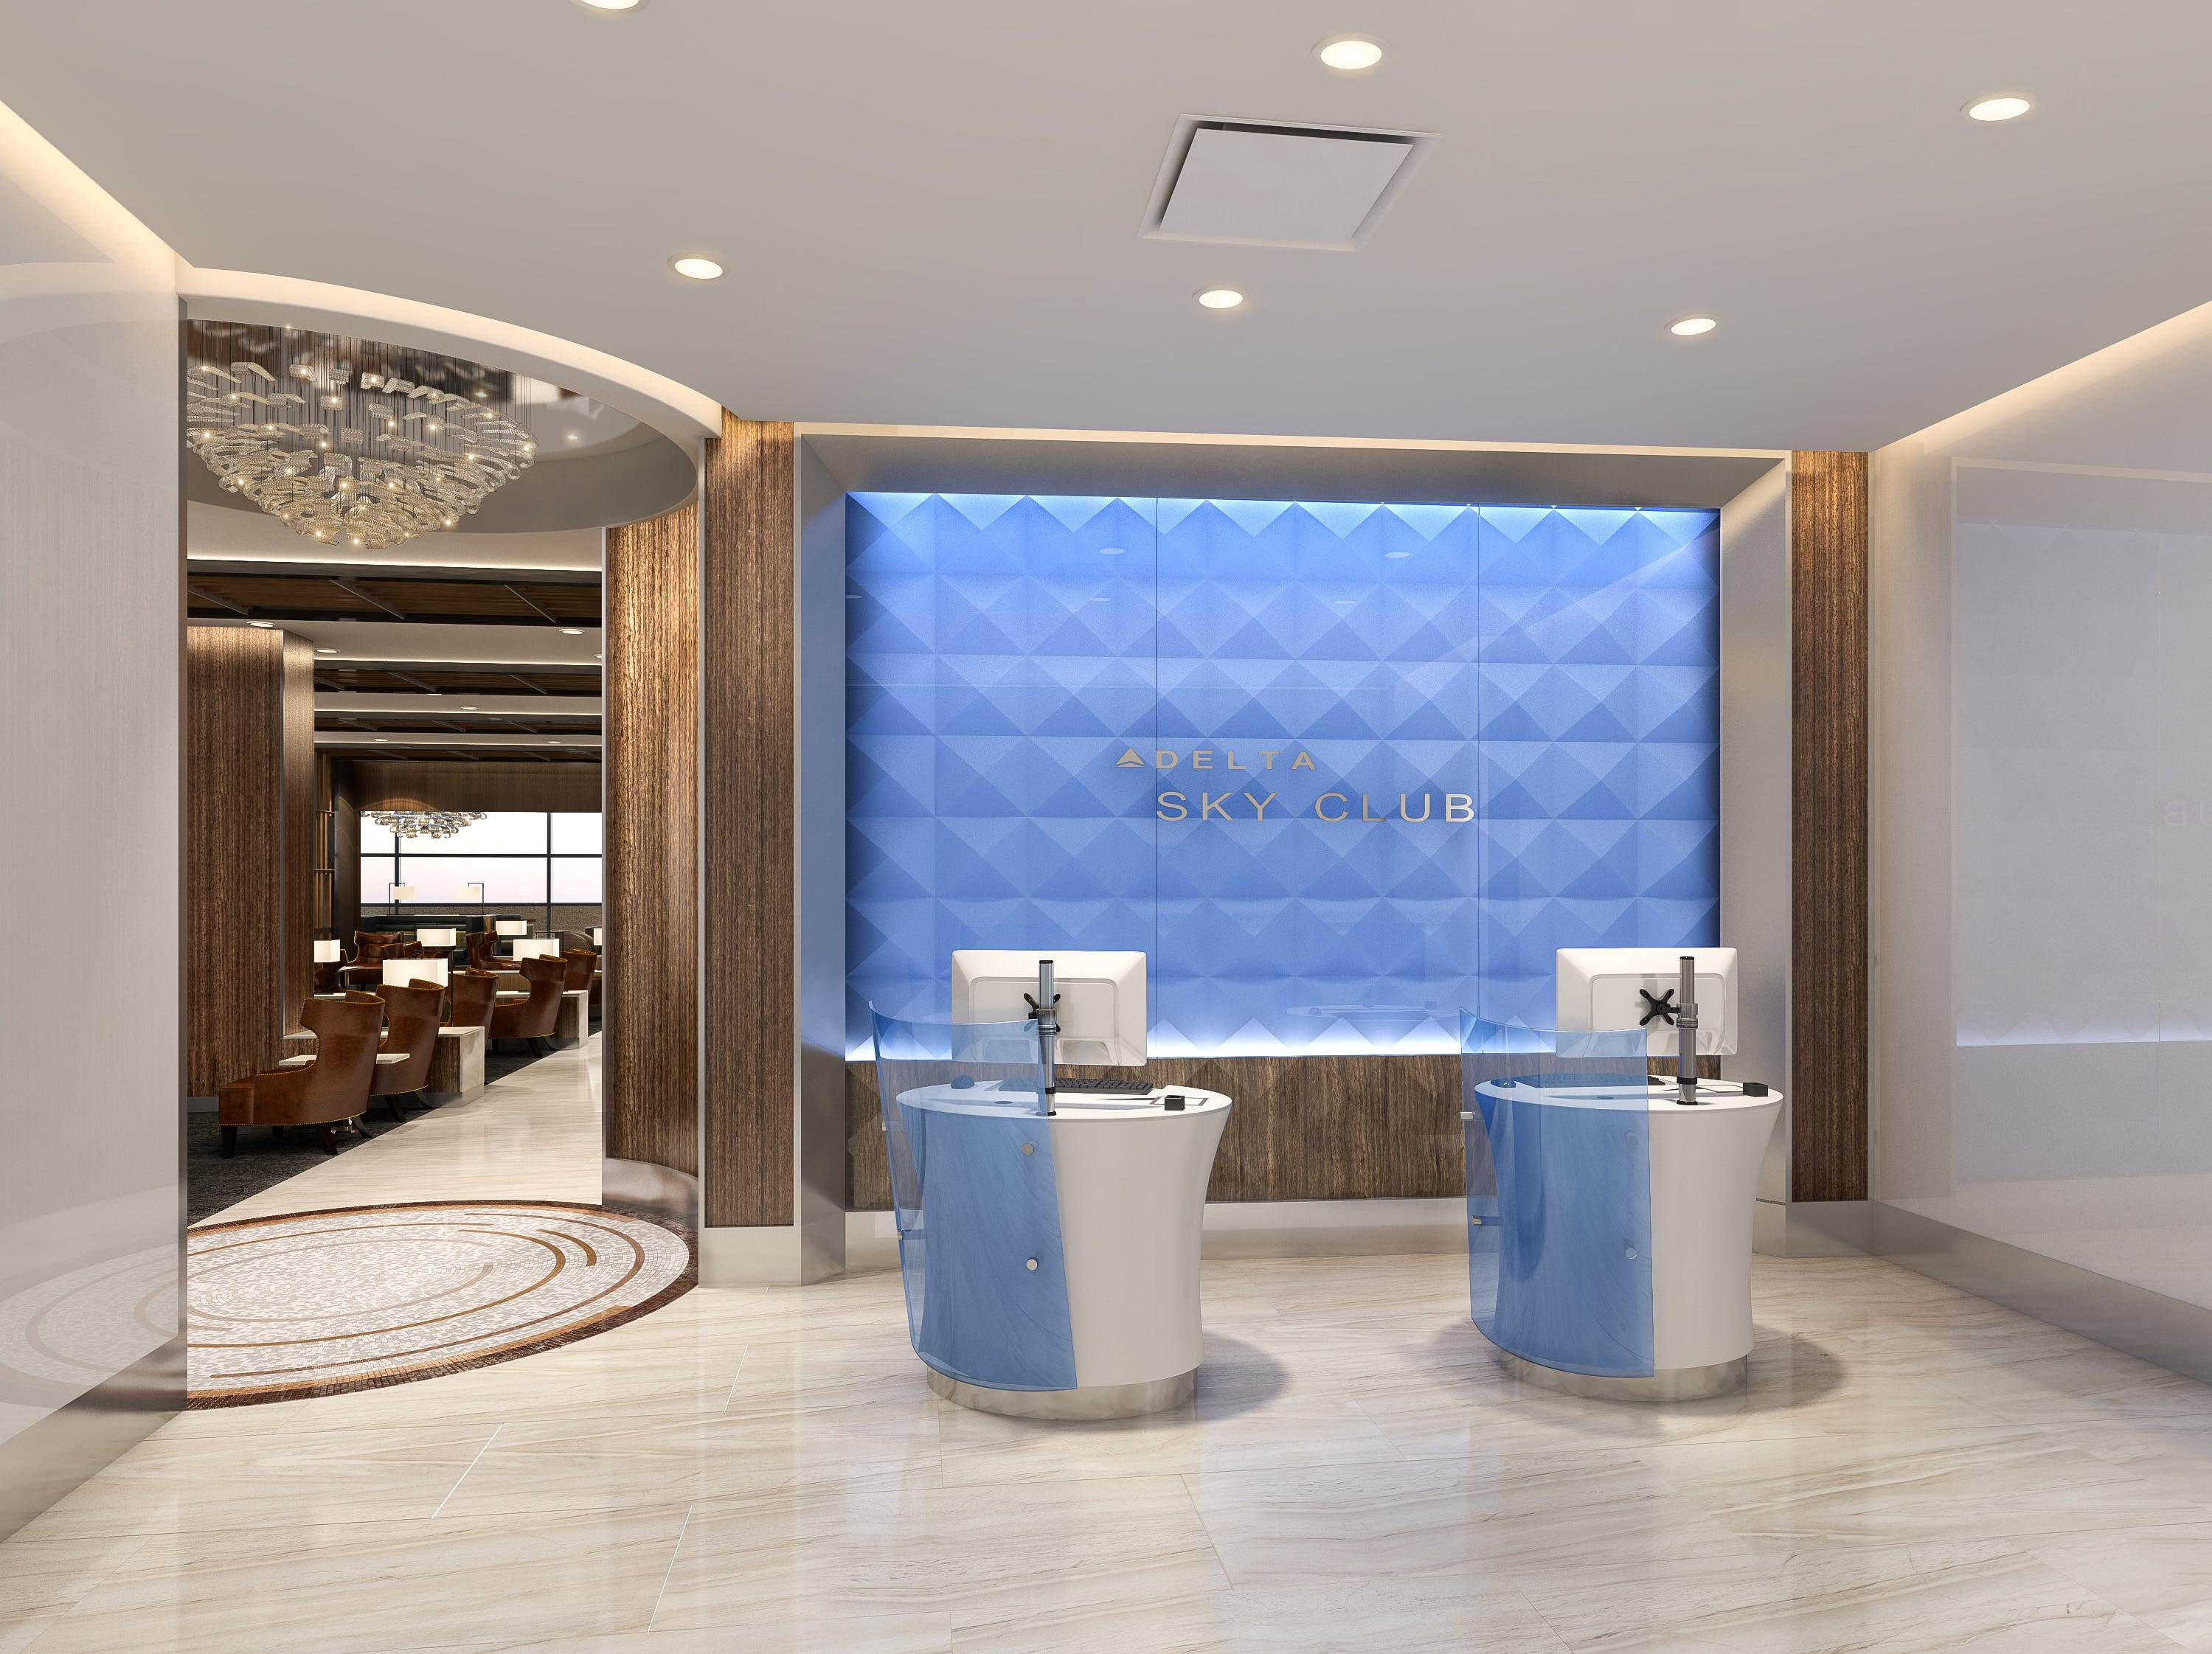 Rendering of the new Delta Sky Club Lounge at Sky Harbor